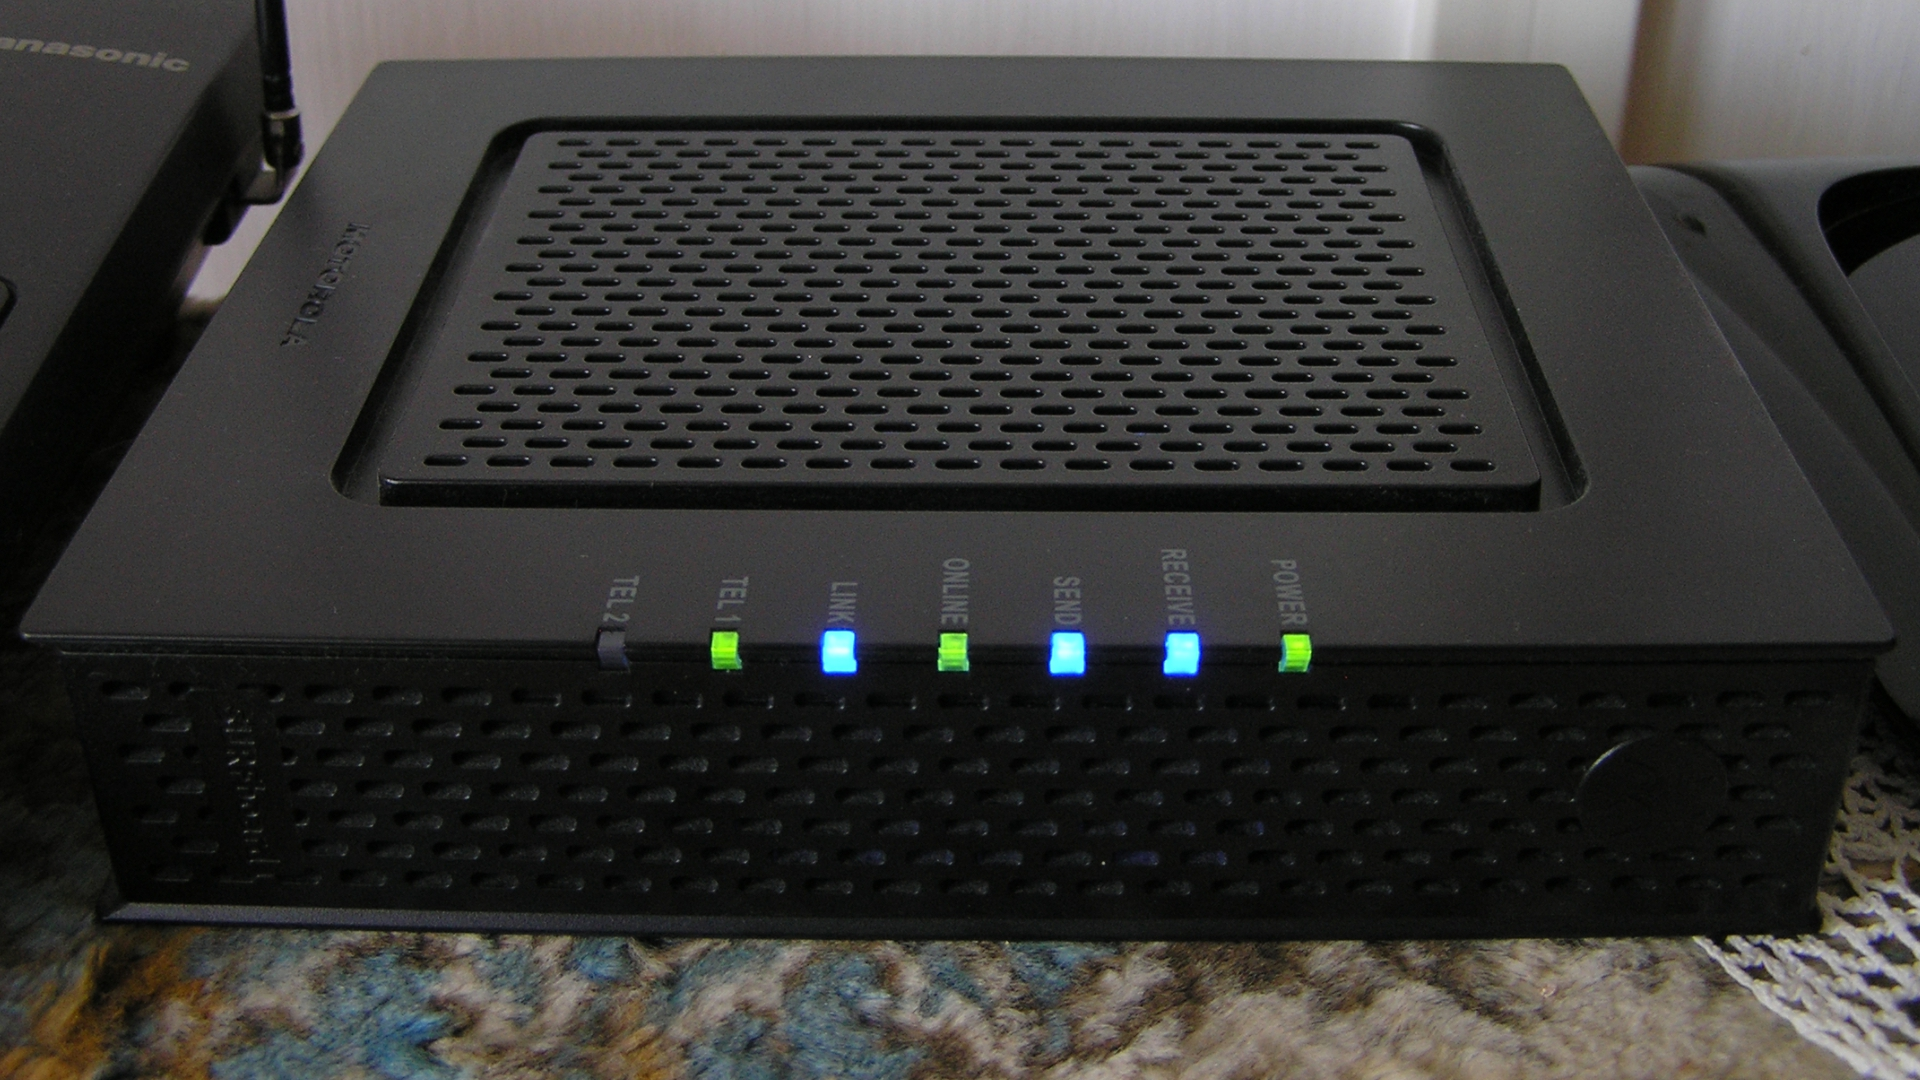 MOTOROLA SURFBOARD VOICE OVER IP CABLE MODEM DRIVER DOWNLOAD FREE